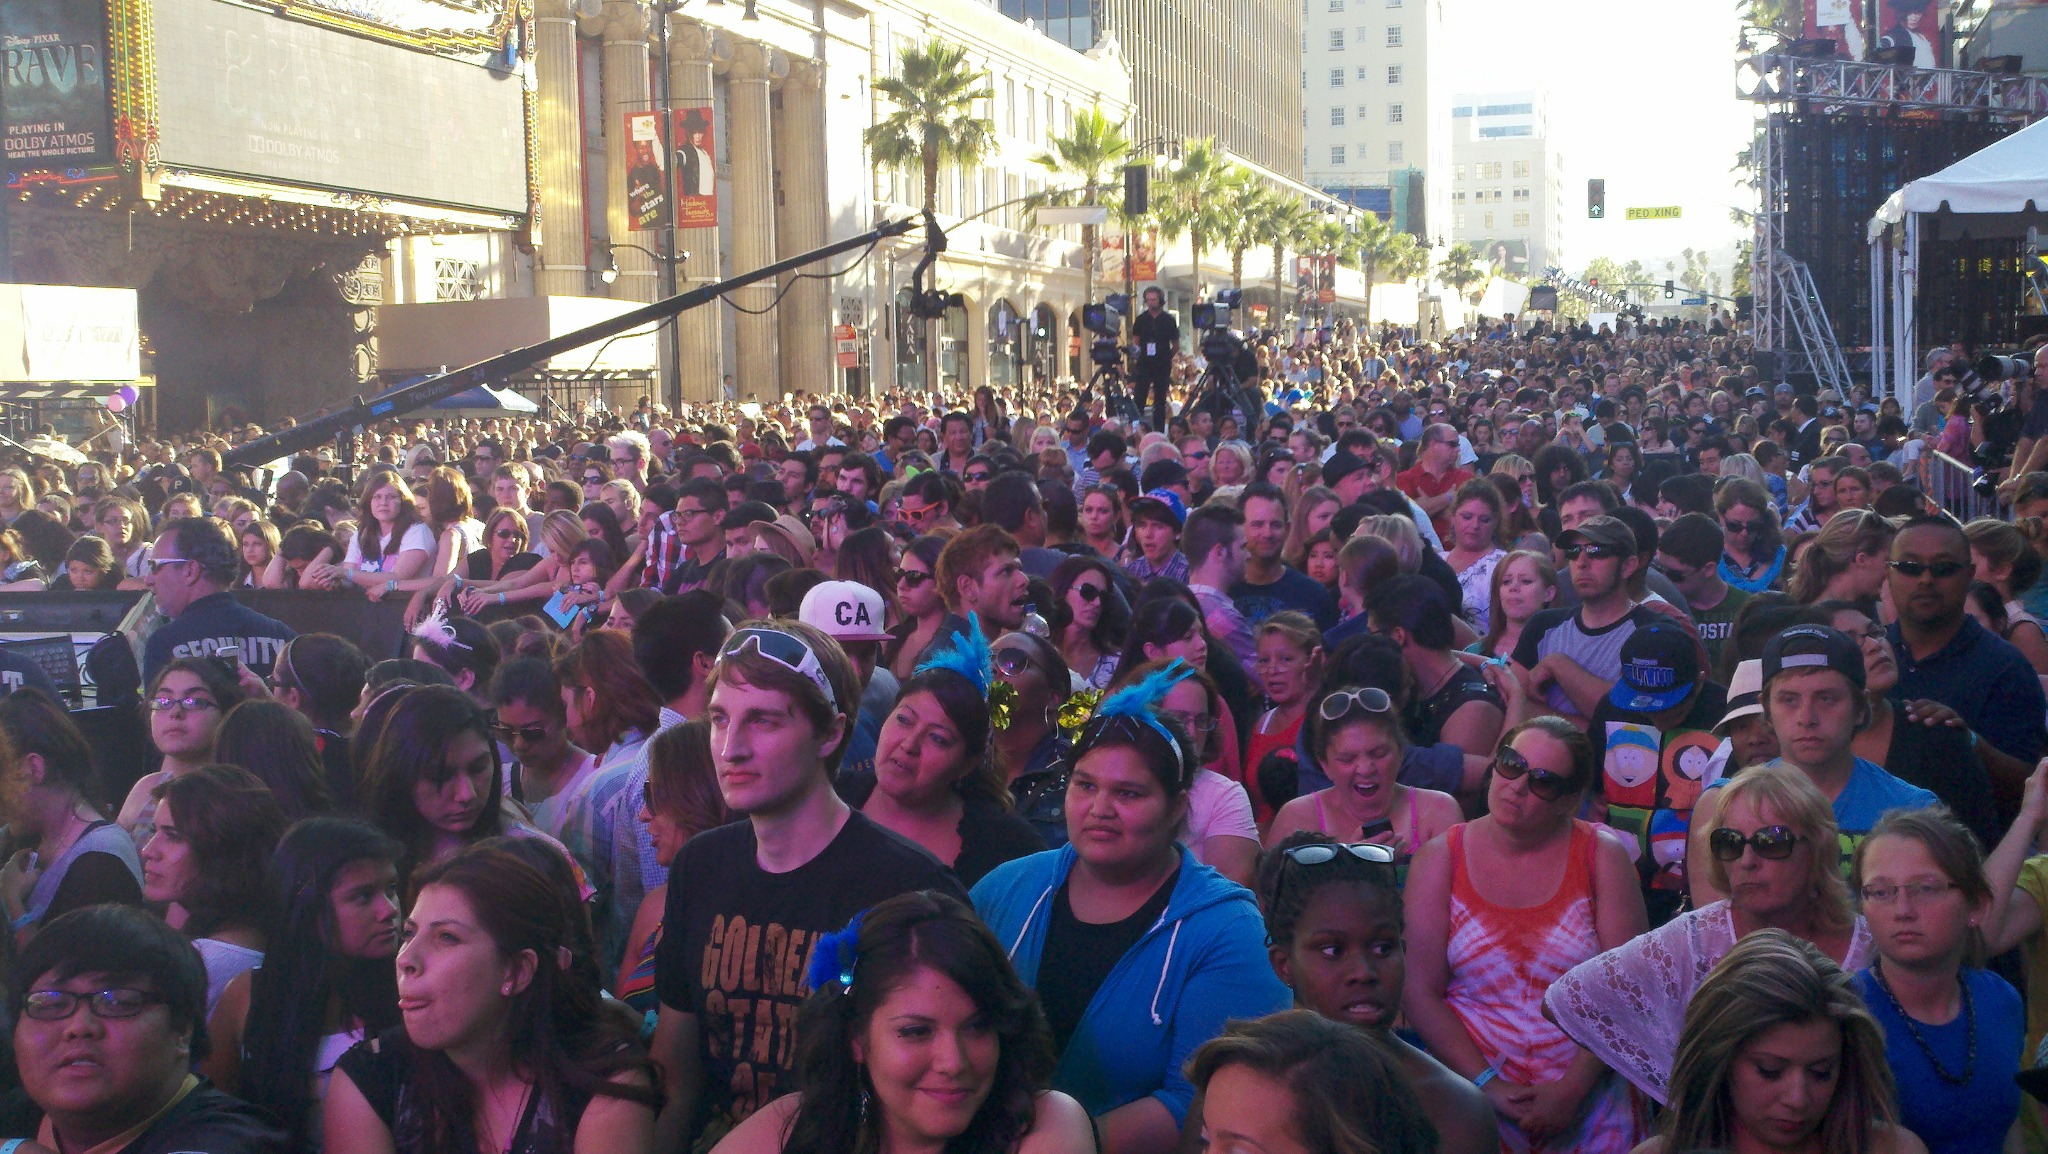 #KatyCats have invaded L.A. and it's HOT! Here's a shot of the #KatyCats at the show.  #KatyPerryNow #SummerBeats http://t.co/81hlbjsj